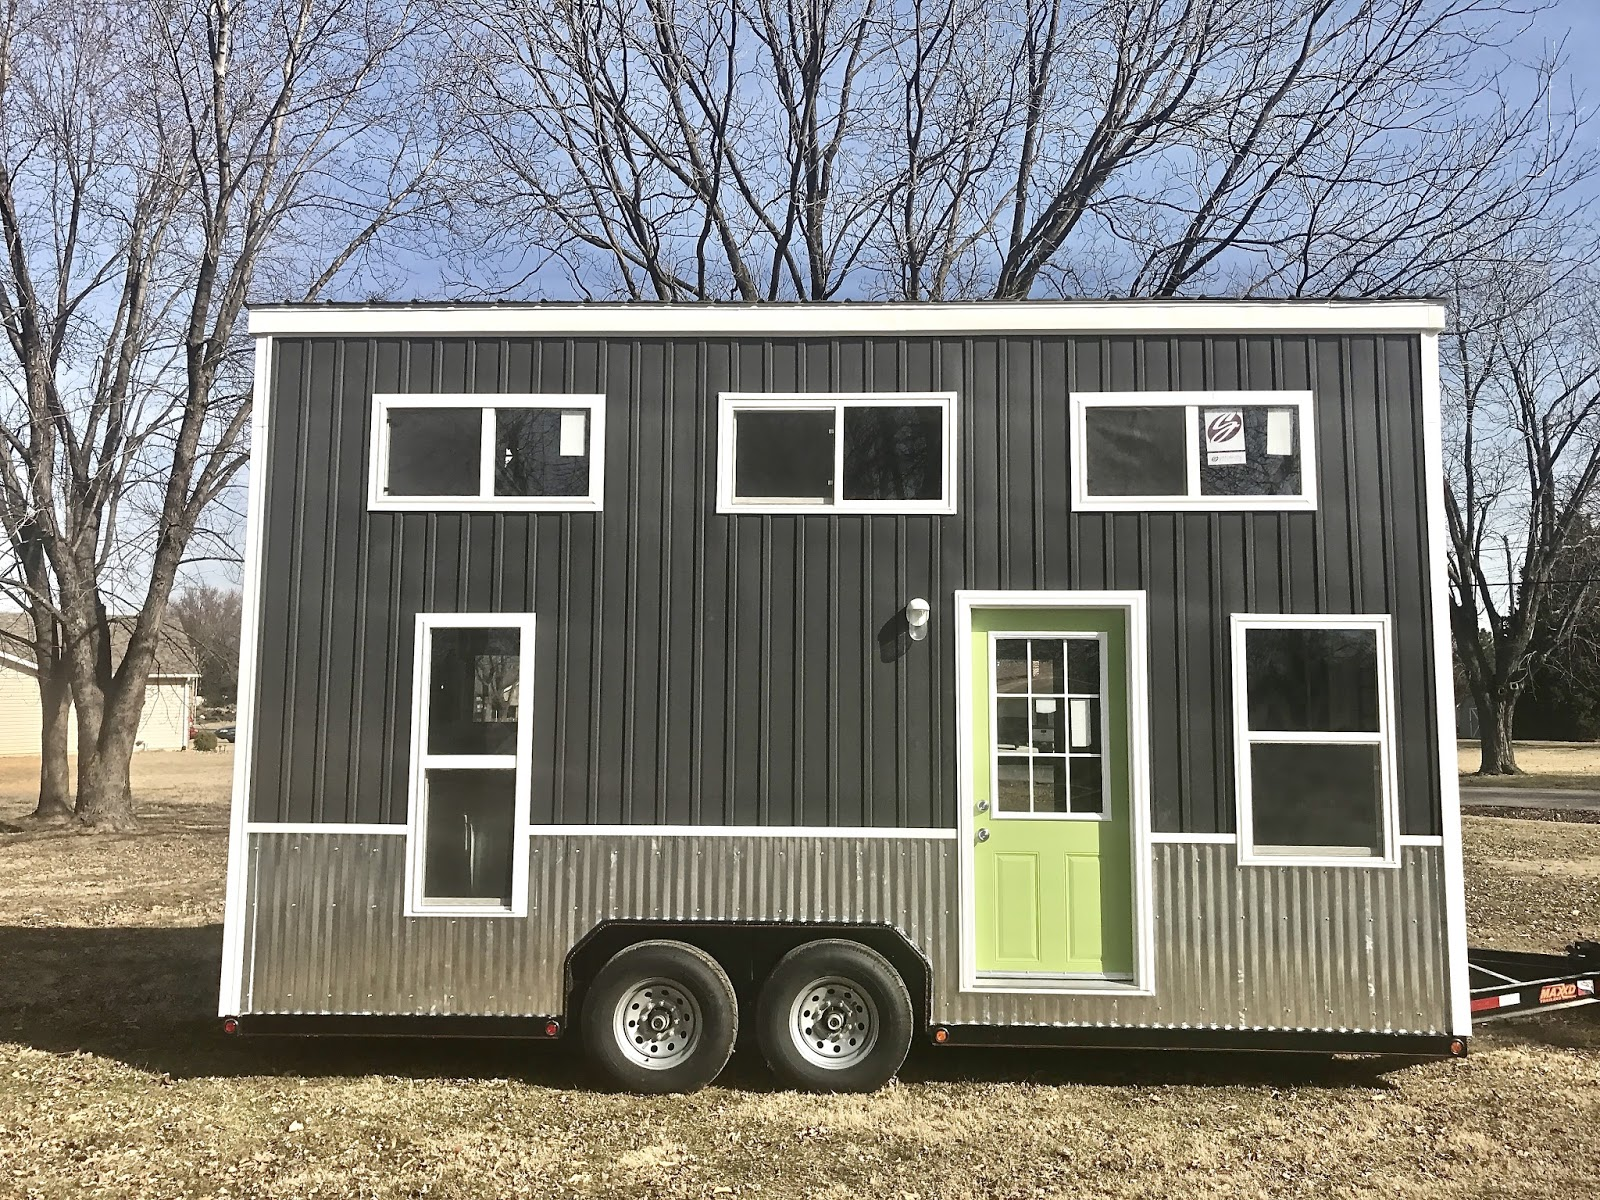 Tiny house town lime green chic shack 241 sq ft for Shack homes